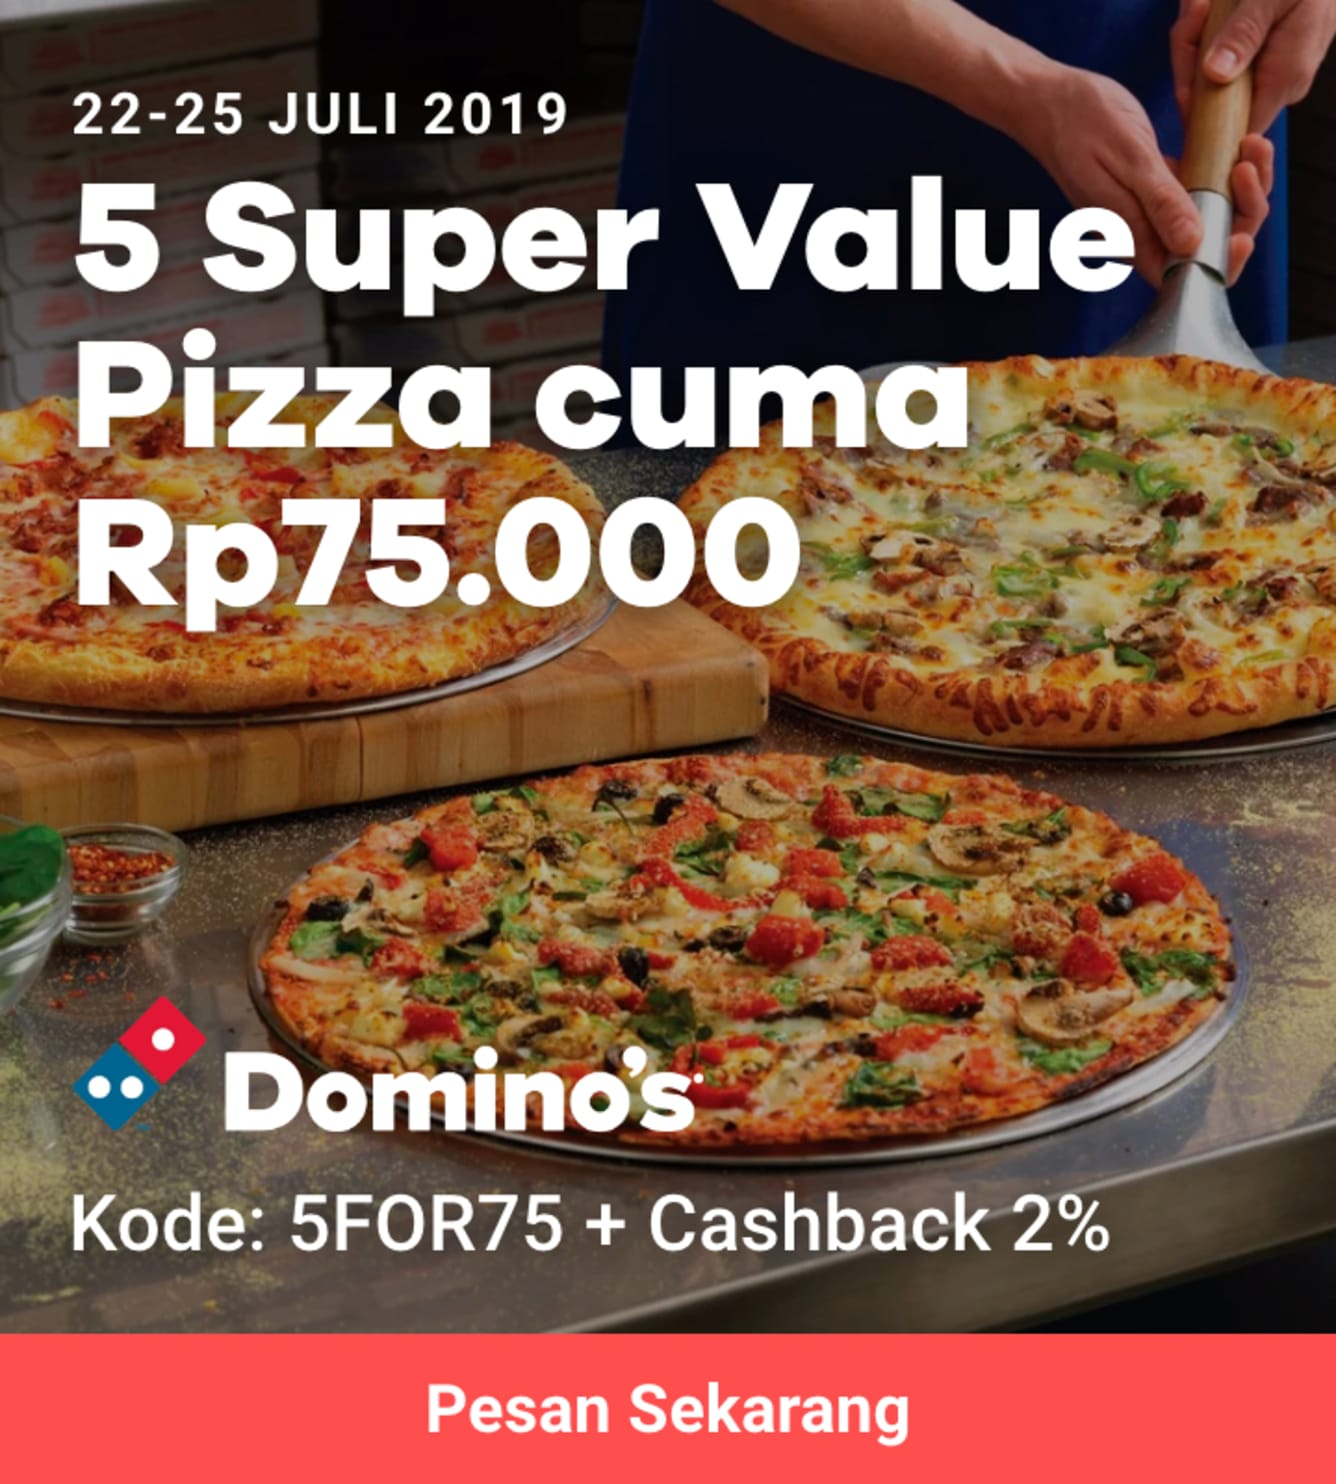 Week 30 - Promo Domino's Pizza